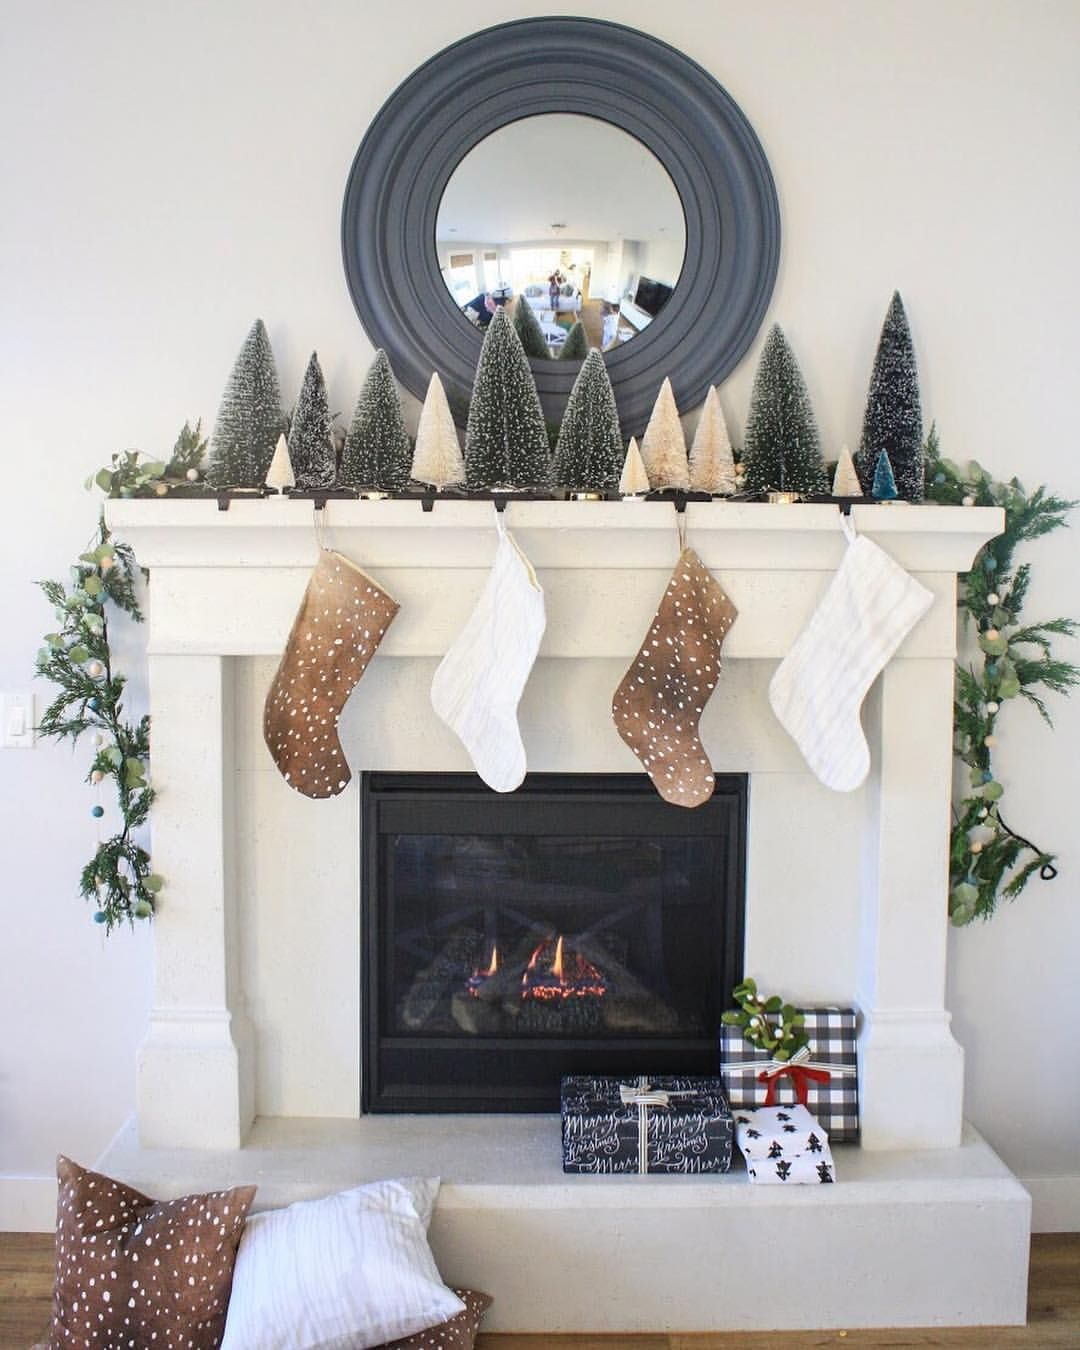 349 Likes 4 Comments House Of Jade Houseofjadeinteriors On Instagram It S The Most Wonderful Time Of The Y Holiday Mantel New Year Decor Deck The Halls